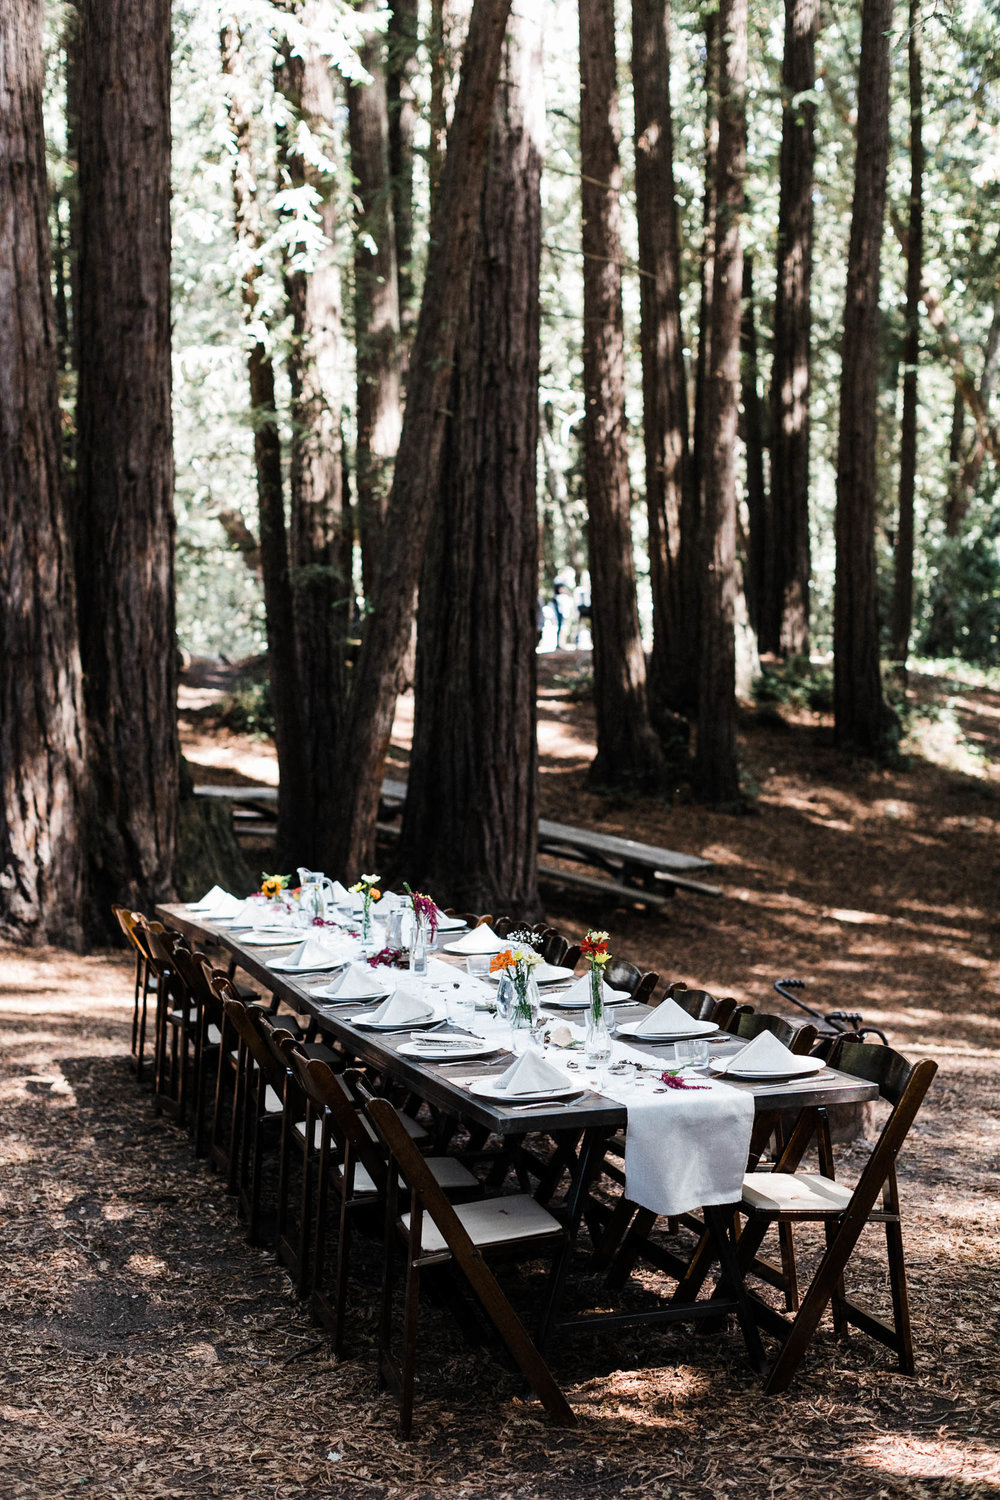 092918_J+S_Mt Madonna Redwoods Wedding_Buena Lane Photography_019.jpg